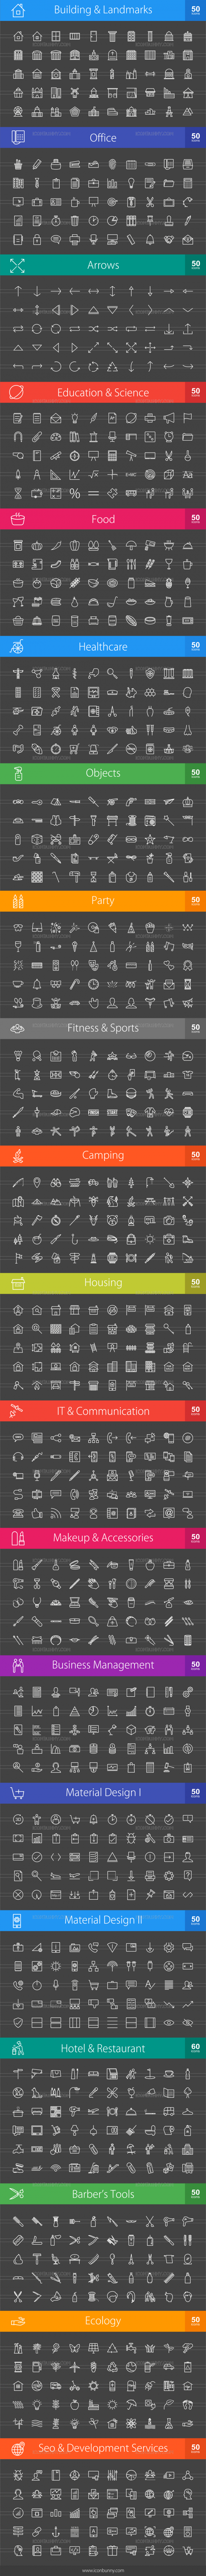 1010 Line Inverted Icons Bundle - Preview - IconBunny